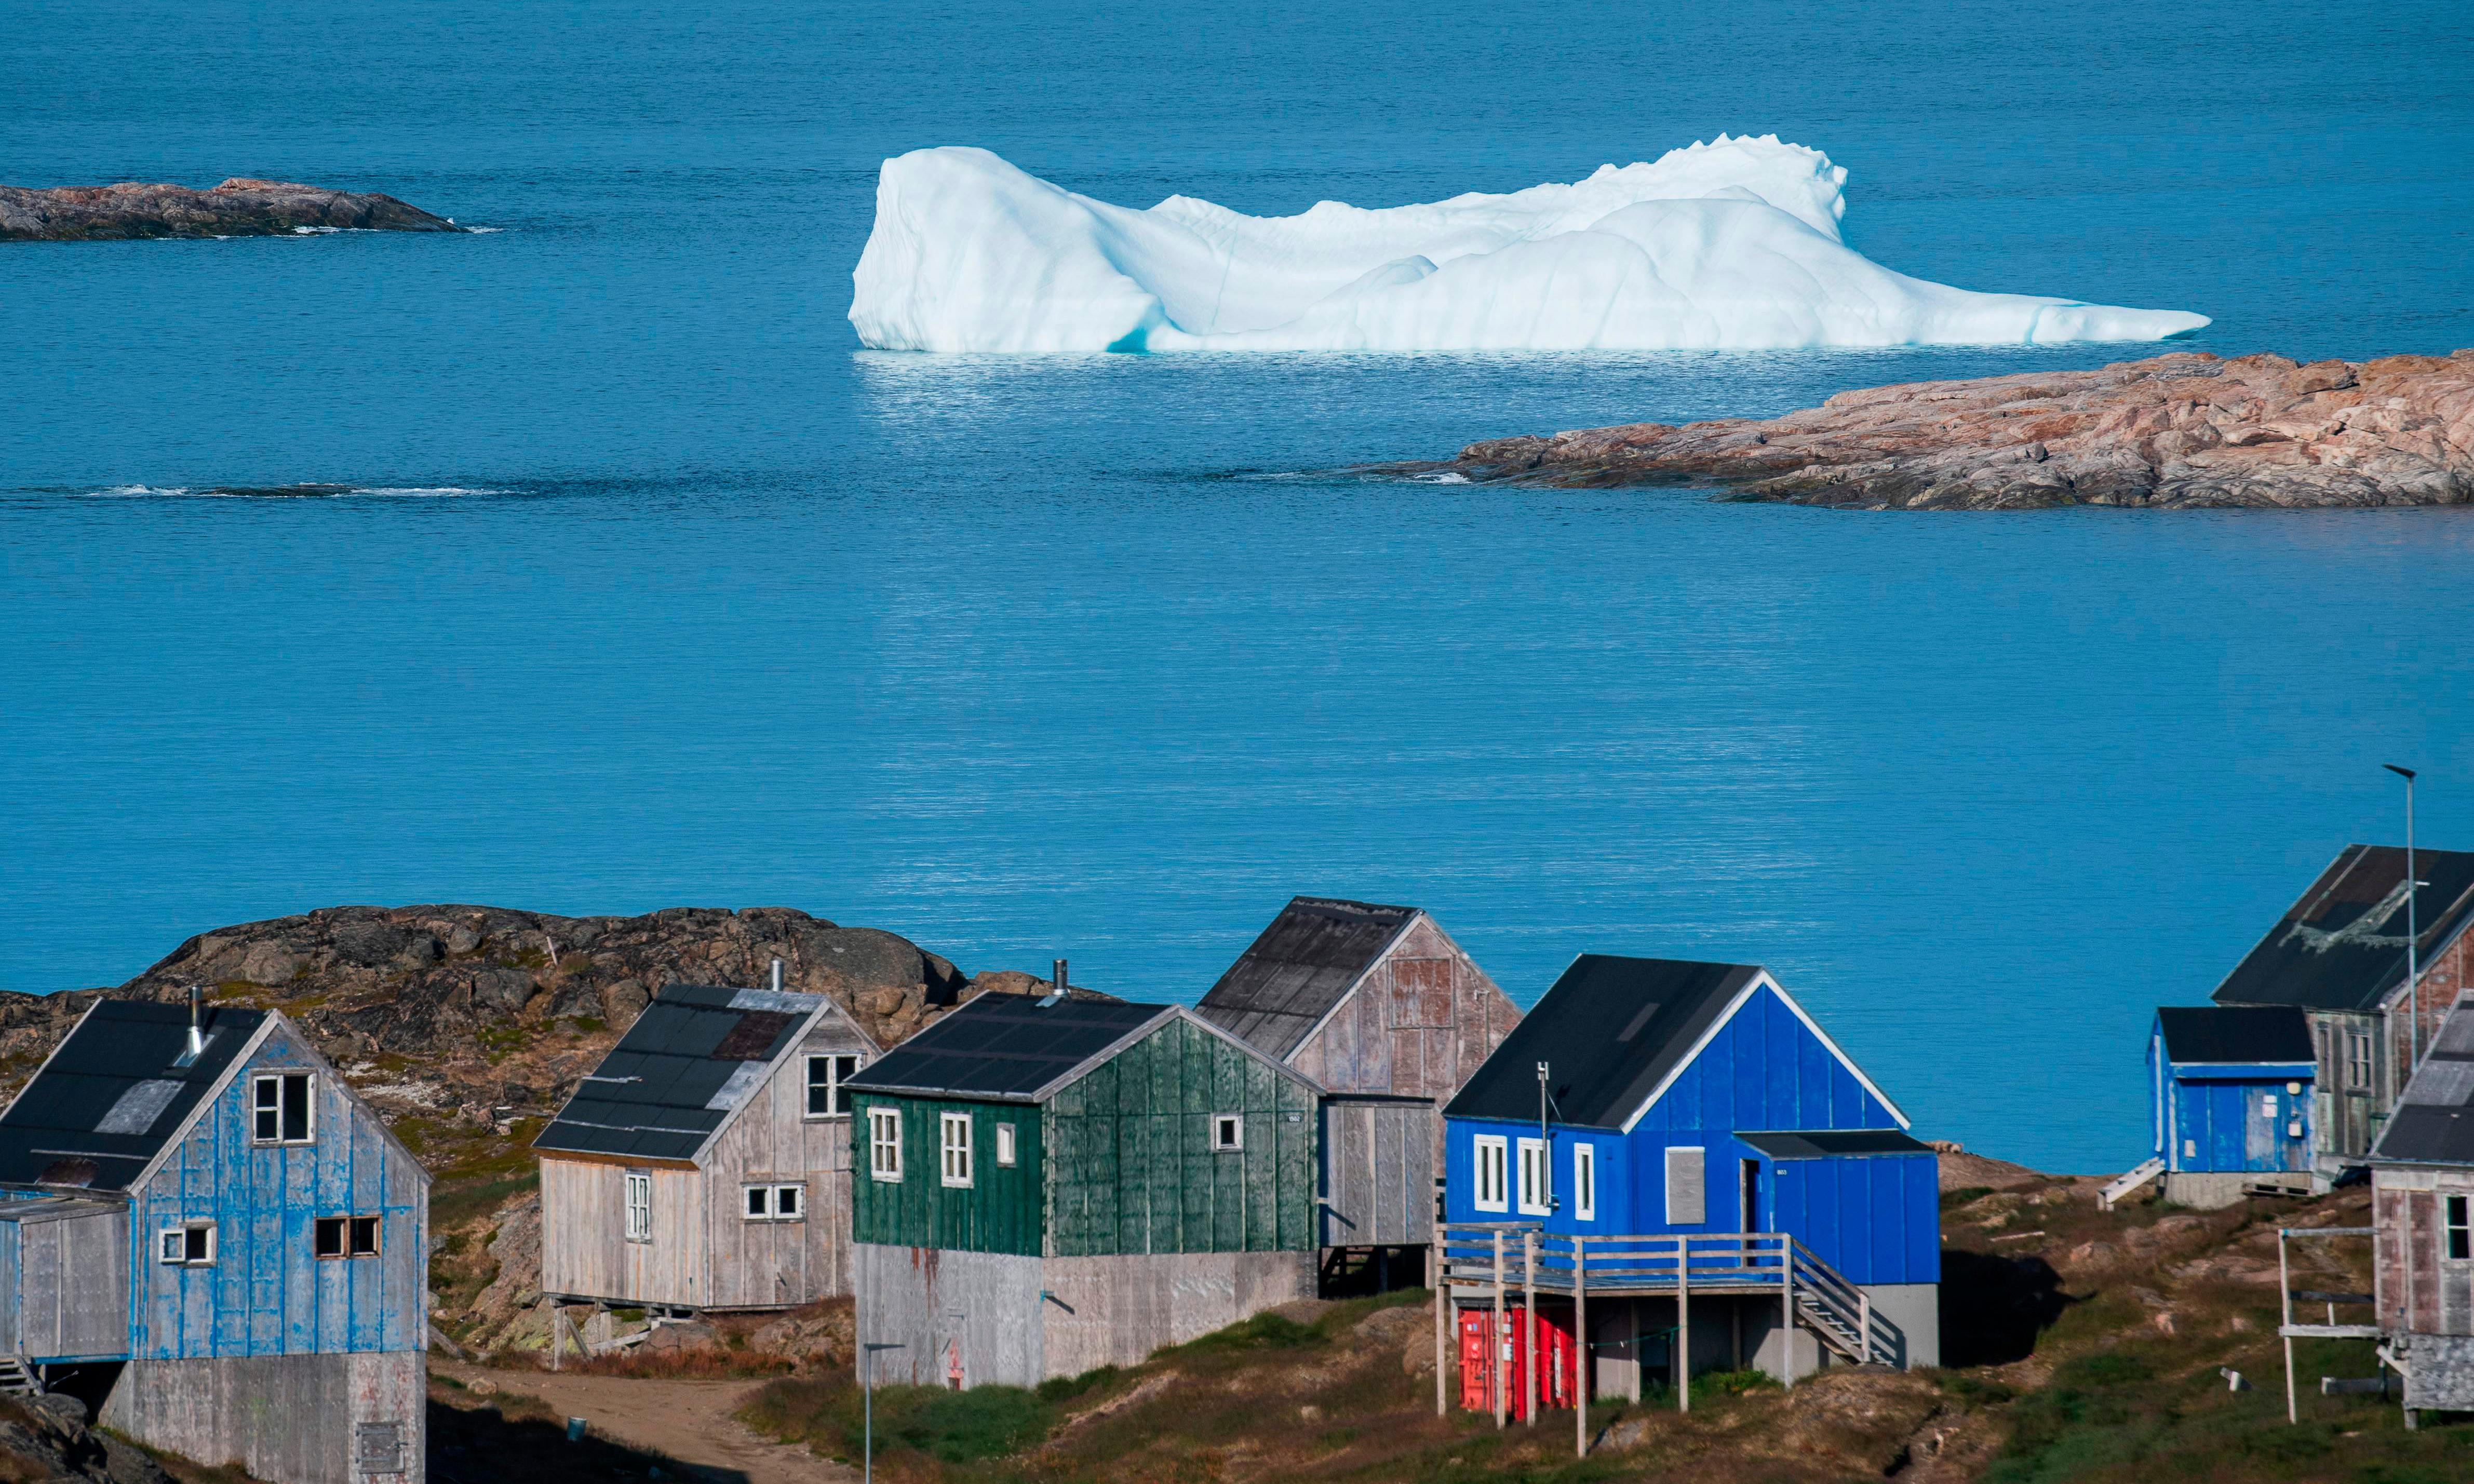 Trump confirms he is considering attempt to buy Greenland